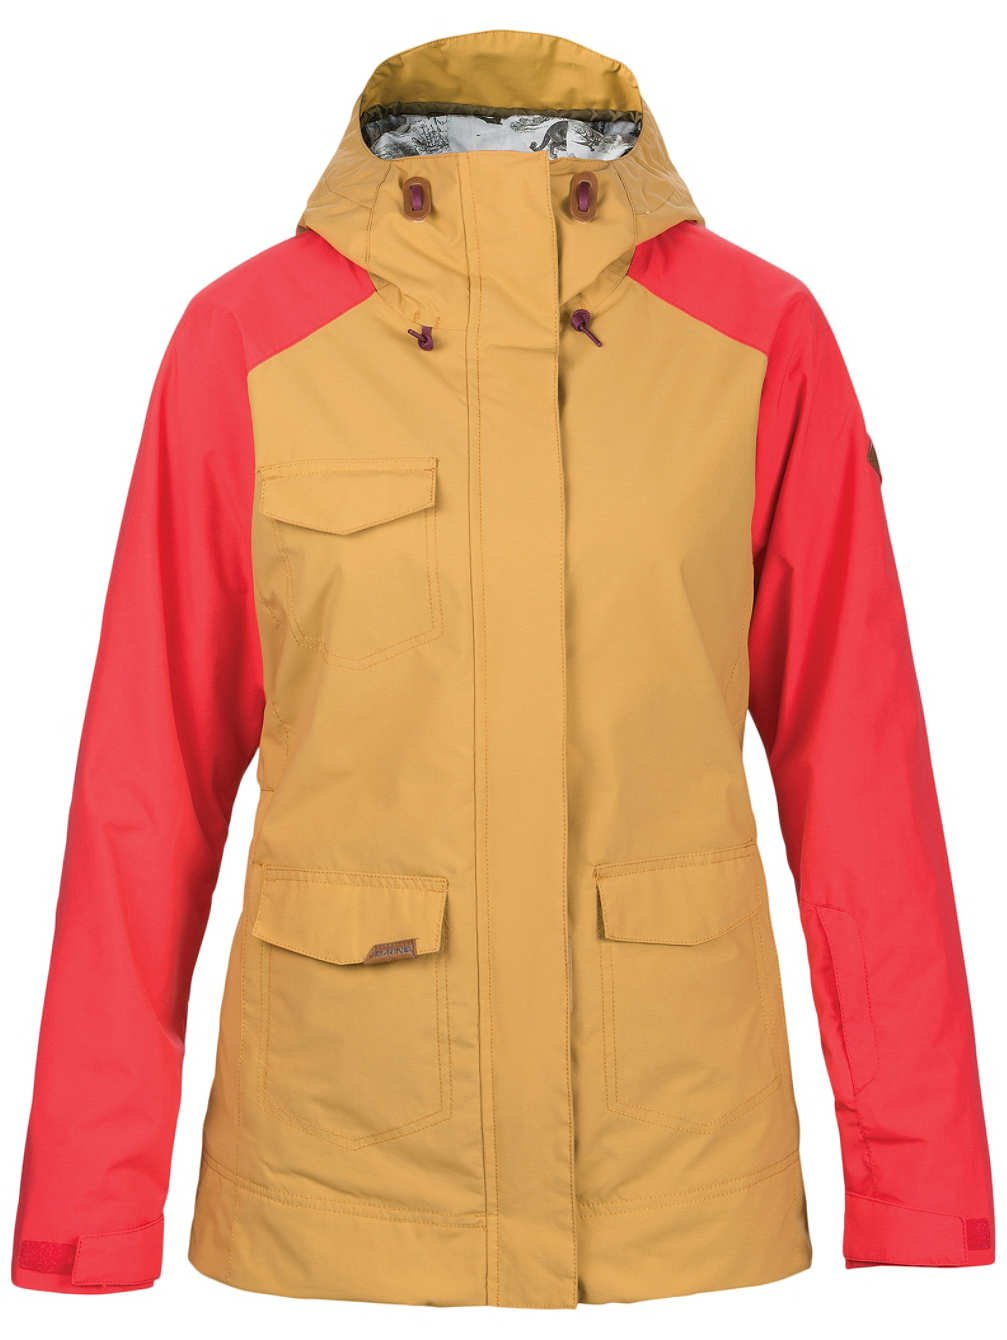 DaKine Women's Canyons II Jacket, LIL Buck, Poppy, S by Dakine